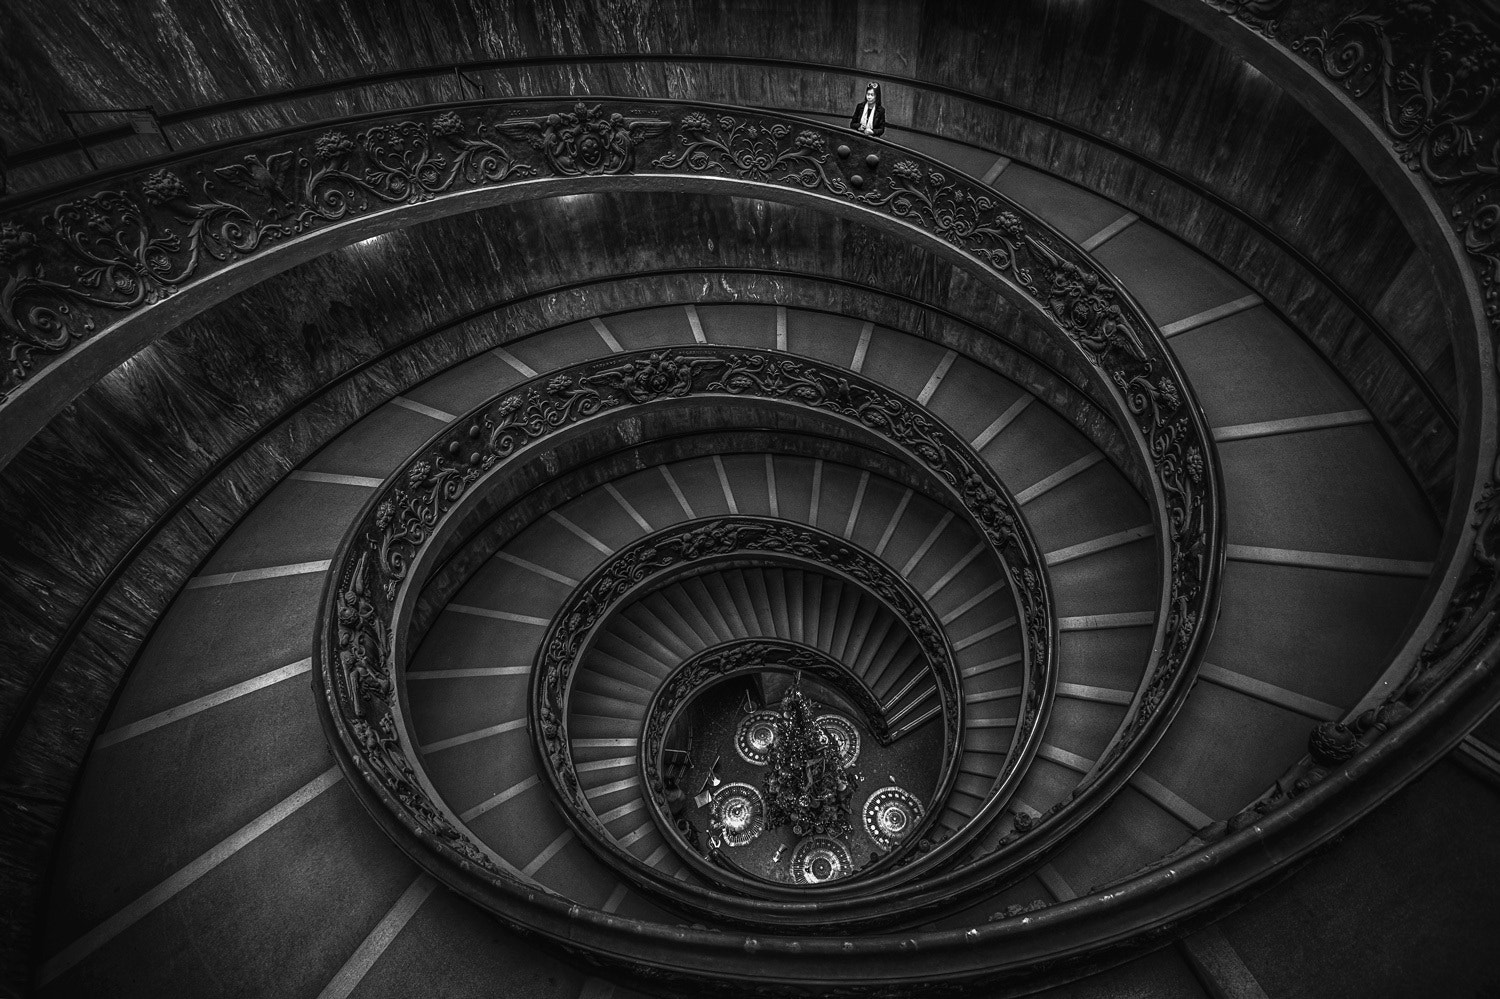 Photograph Vatican Museum by Simon Yin on 500px